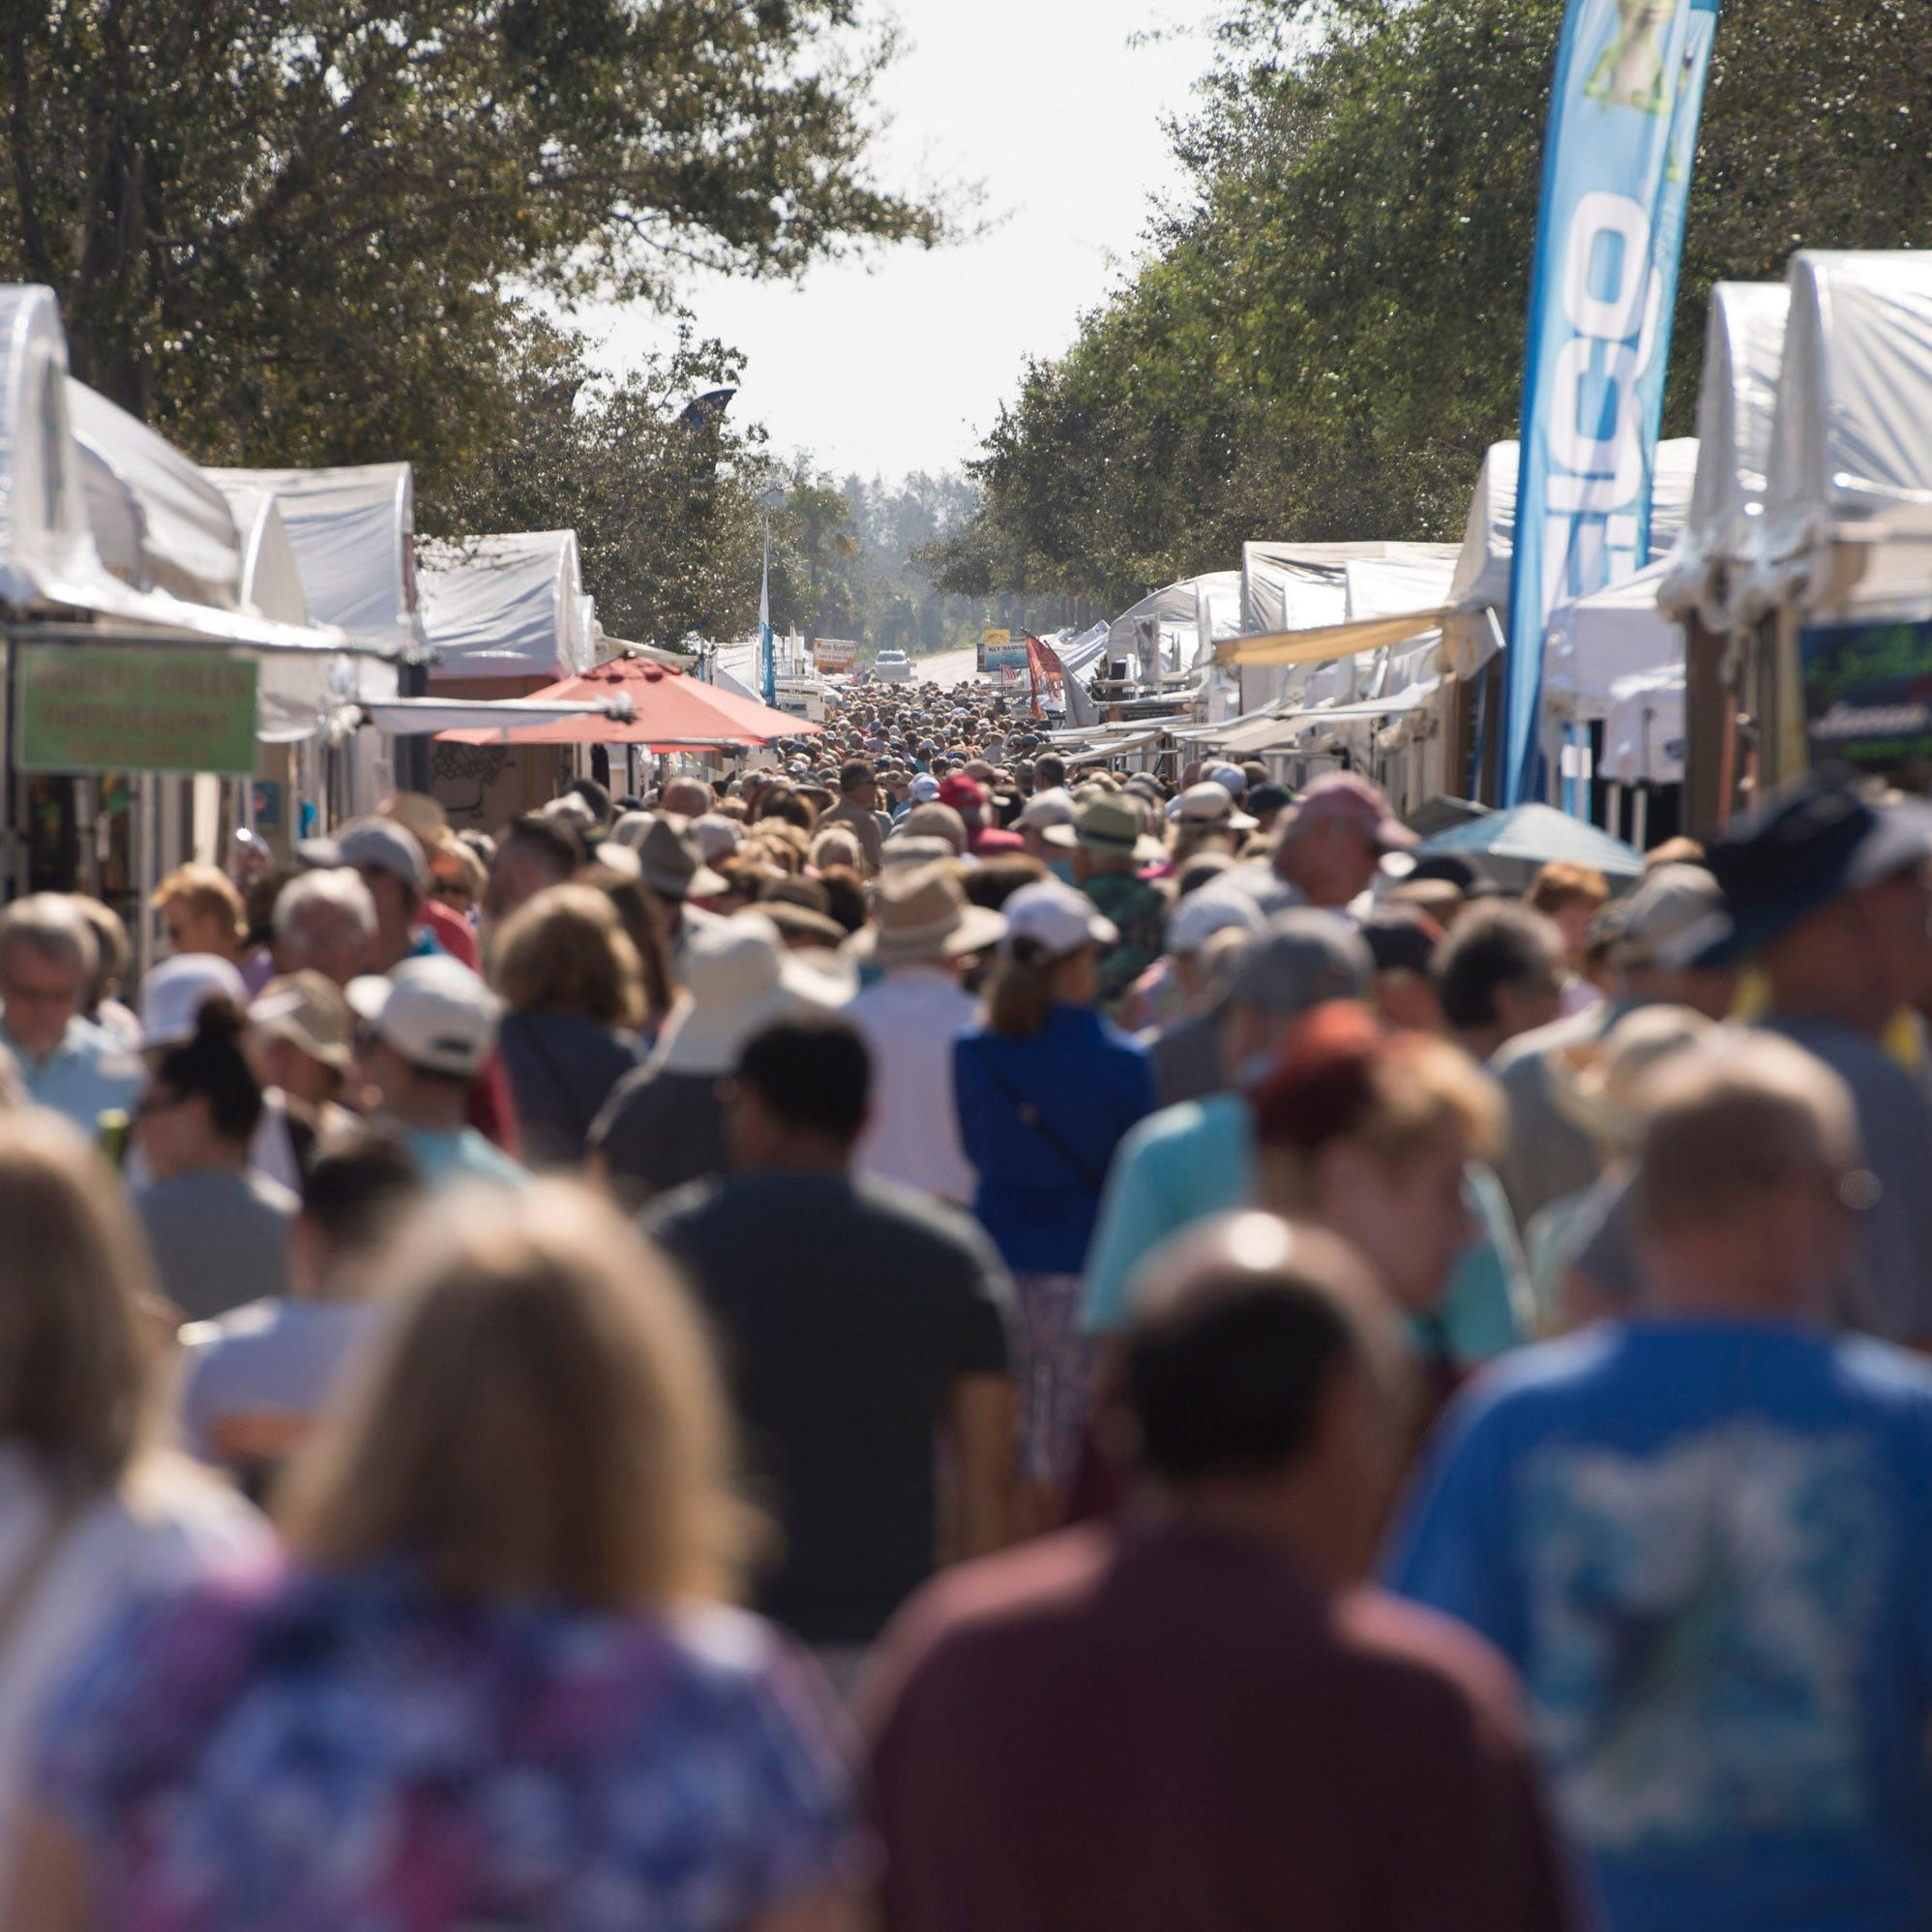 Hobe Sound arts festival, Gardenfest, wildfires expo, bonfire hayride top this weekend